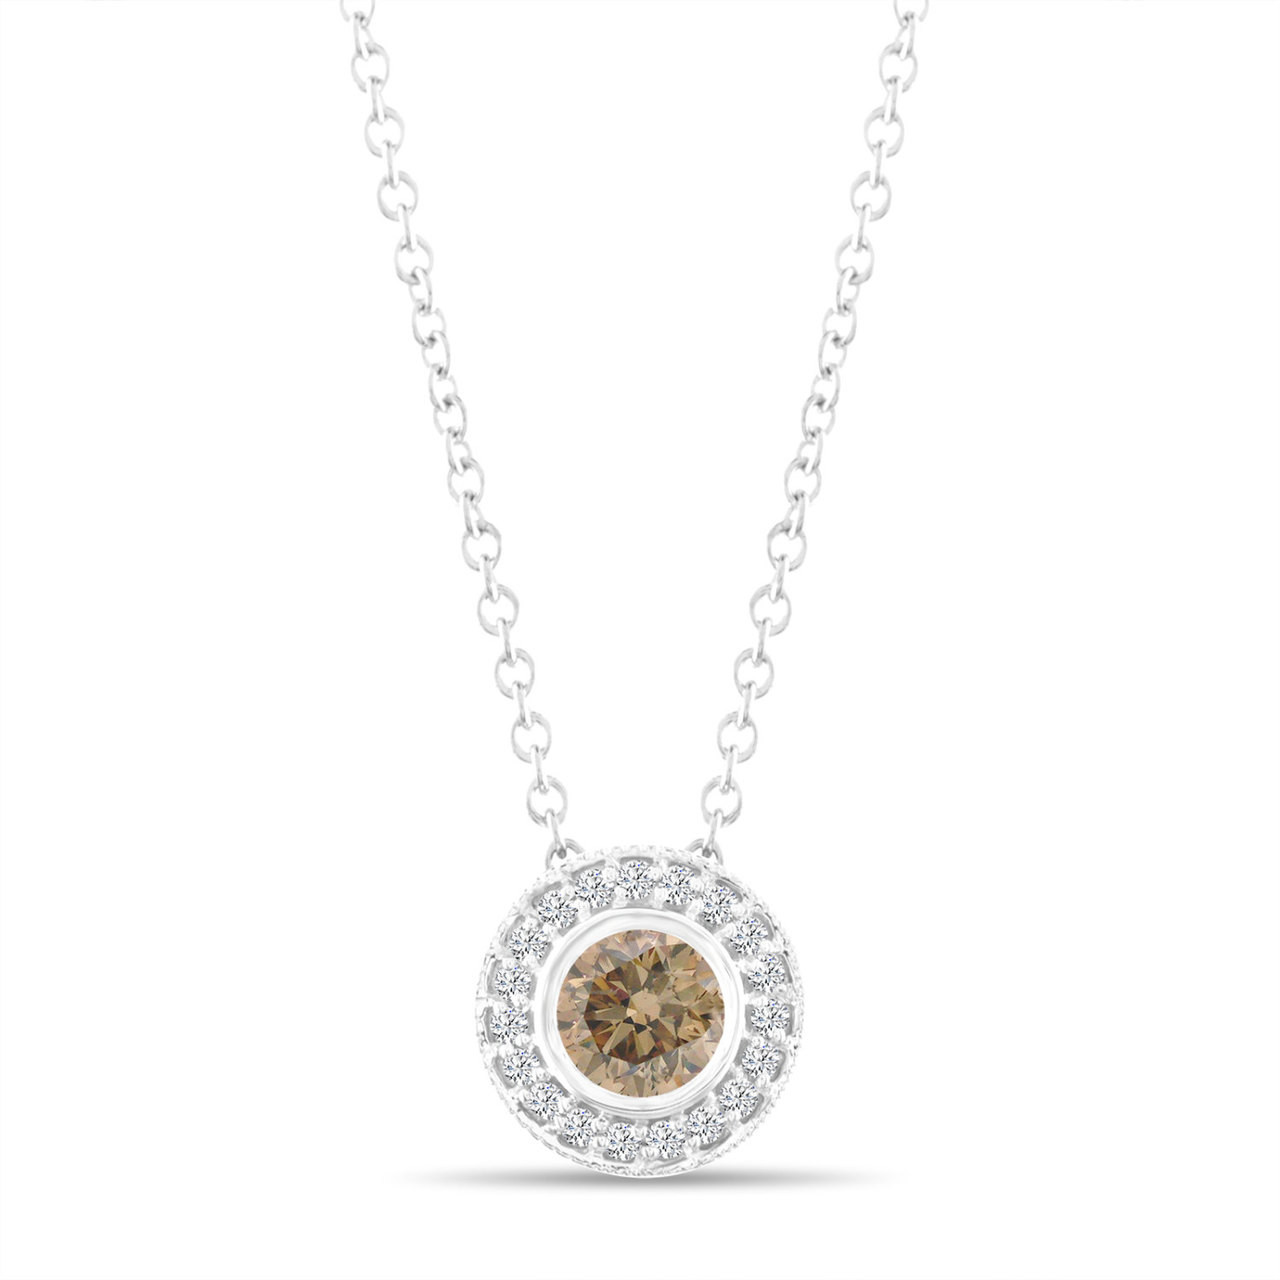 Fancy champagne brown diamond pendant necklace 14k white gold 045 fancy champagne brown diamond pendant necklace 14k white gold 045 carat halo bezel and micro pave set handmade mozeypictures Image collections